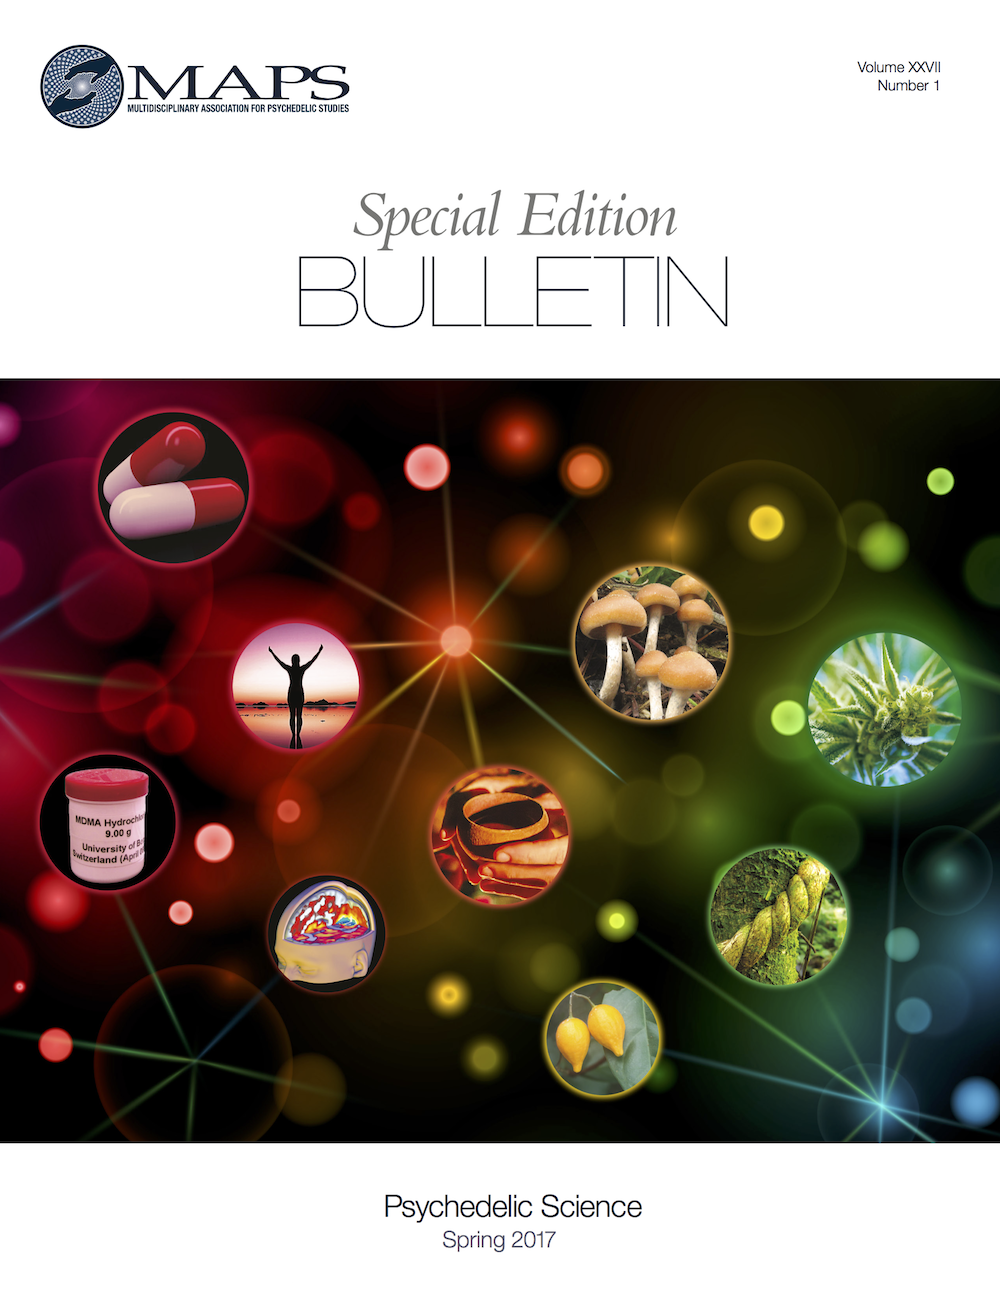 MAPS Bulletin Spring 2017: Vol 27, No. 1 Special Edition: Psychedelic Science